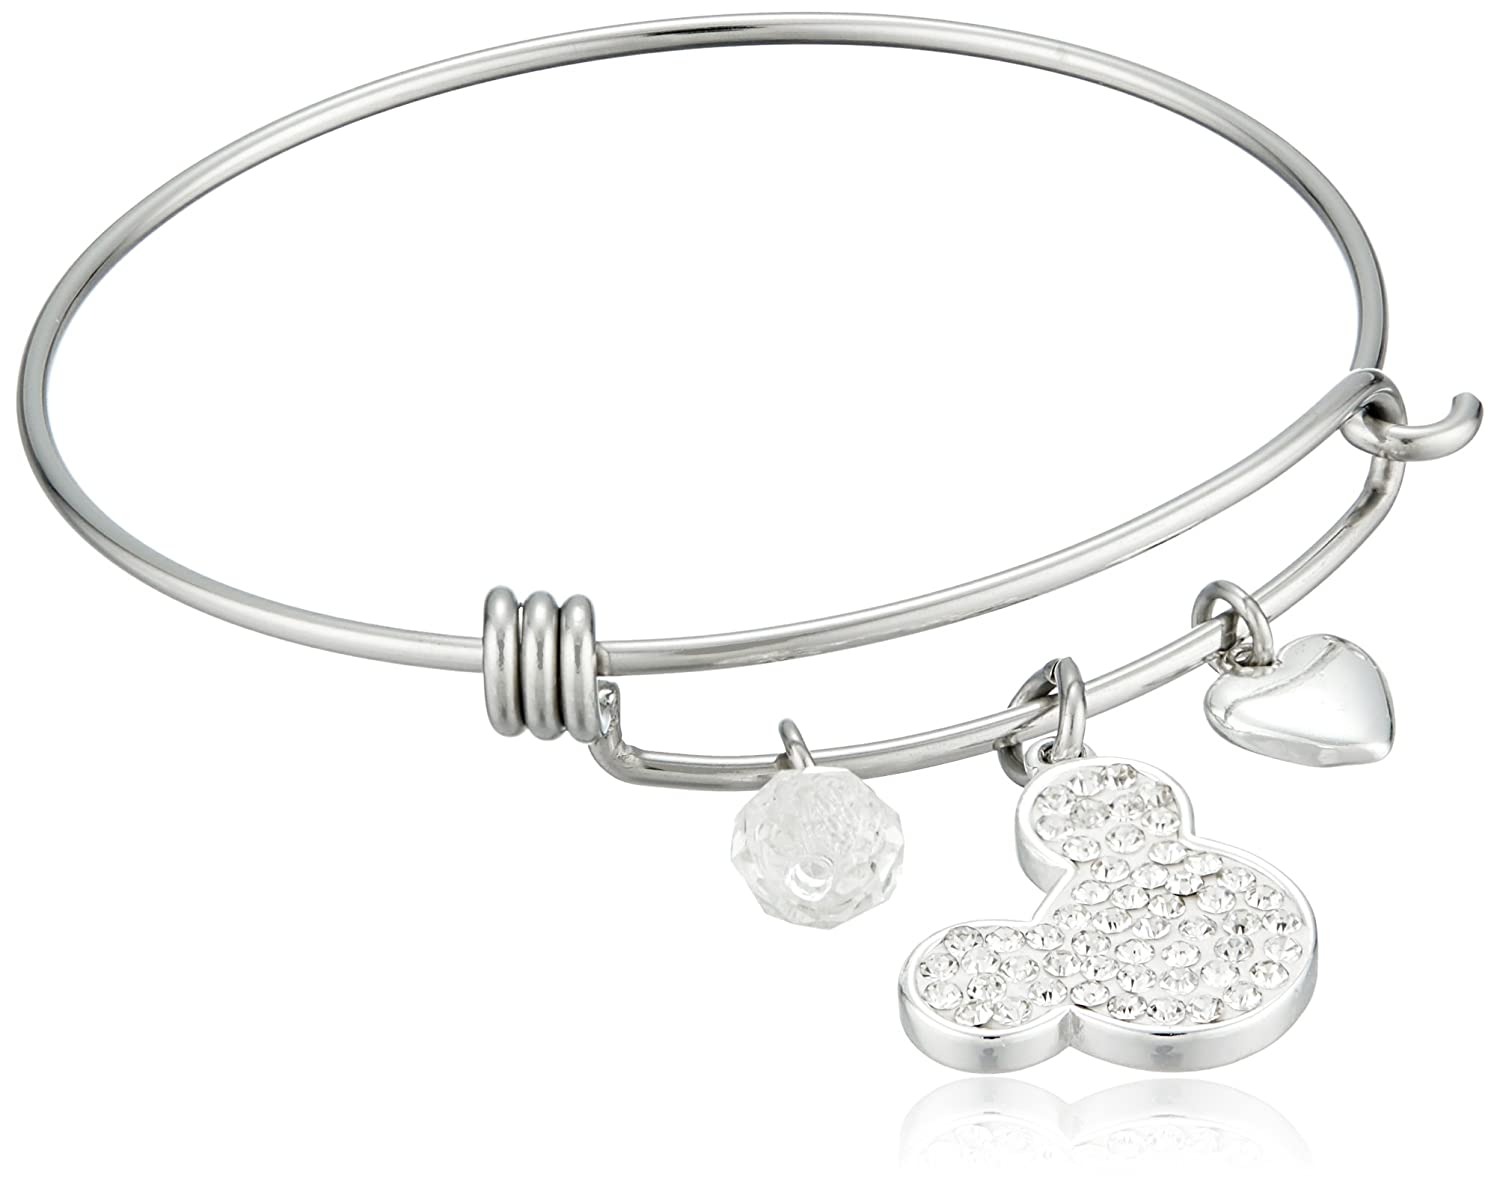 Disney Stainless Steel Catch Bangle with Silver Plated Crystal Mickey Mouse Head,I Love Mickey, Heart and Crystal Bead Charm Bangle Bracelet I Love Mickey Disney Jewelry D50115